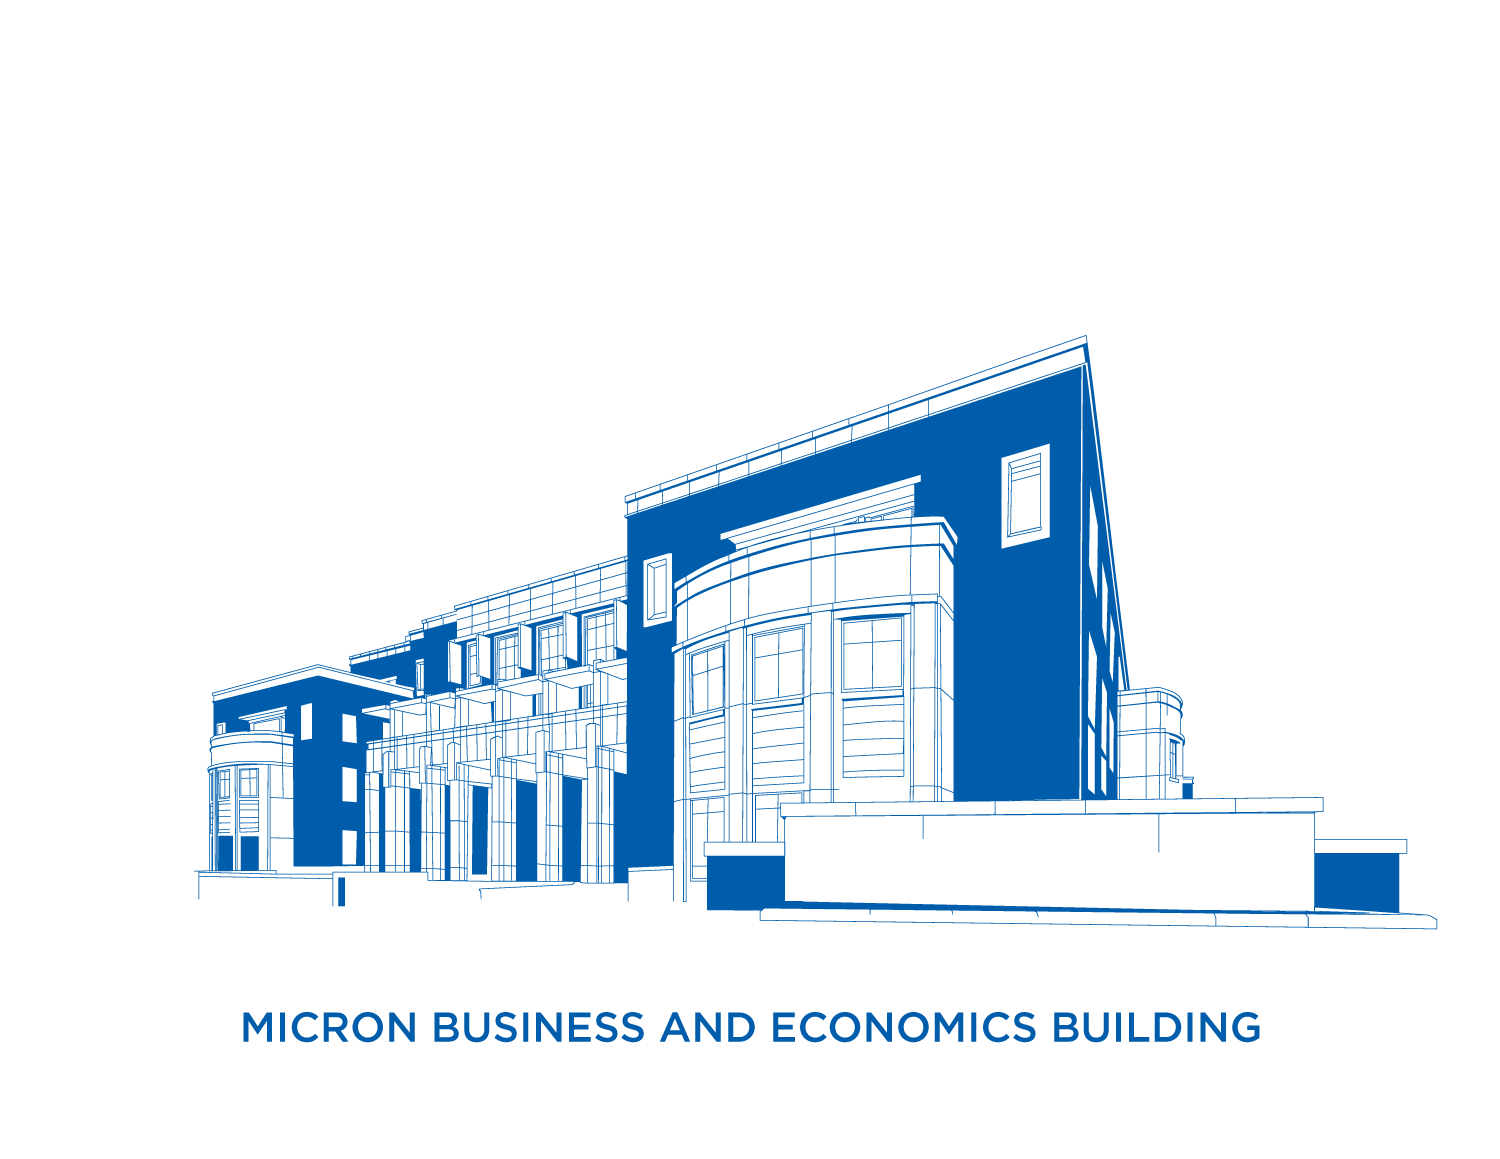 Micron Business and Economics Building